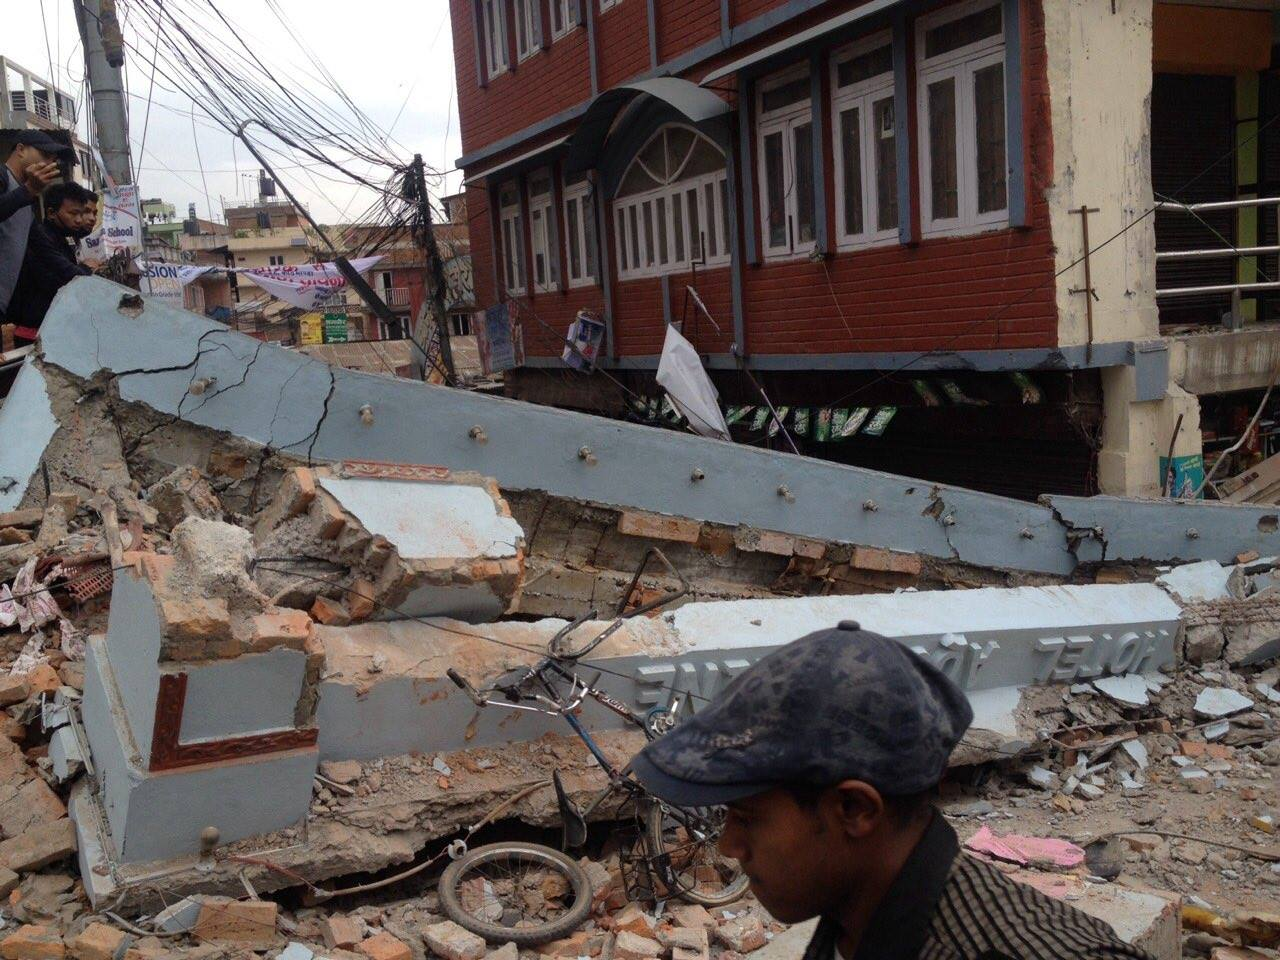 File:Nepal Earthquake 2015 01.